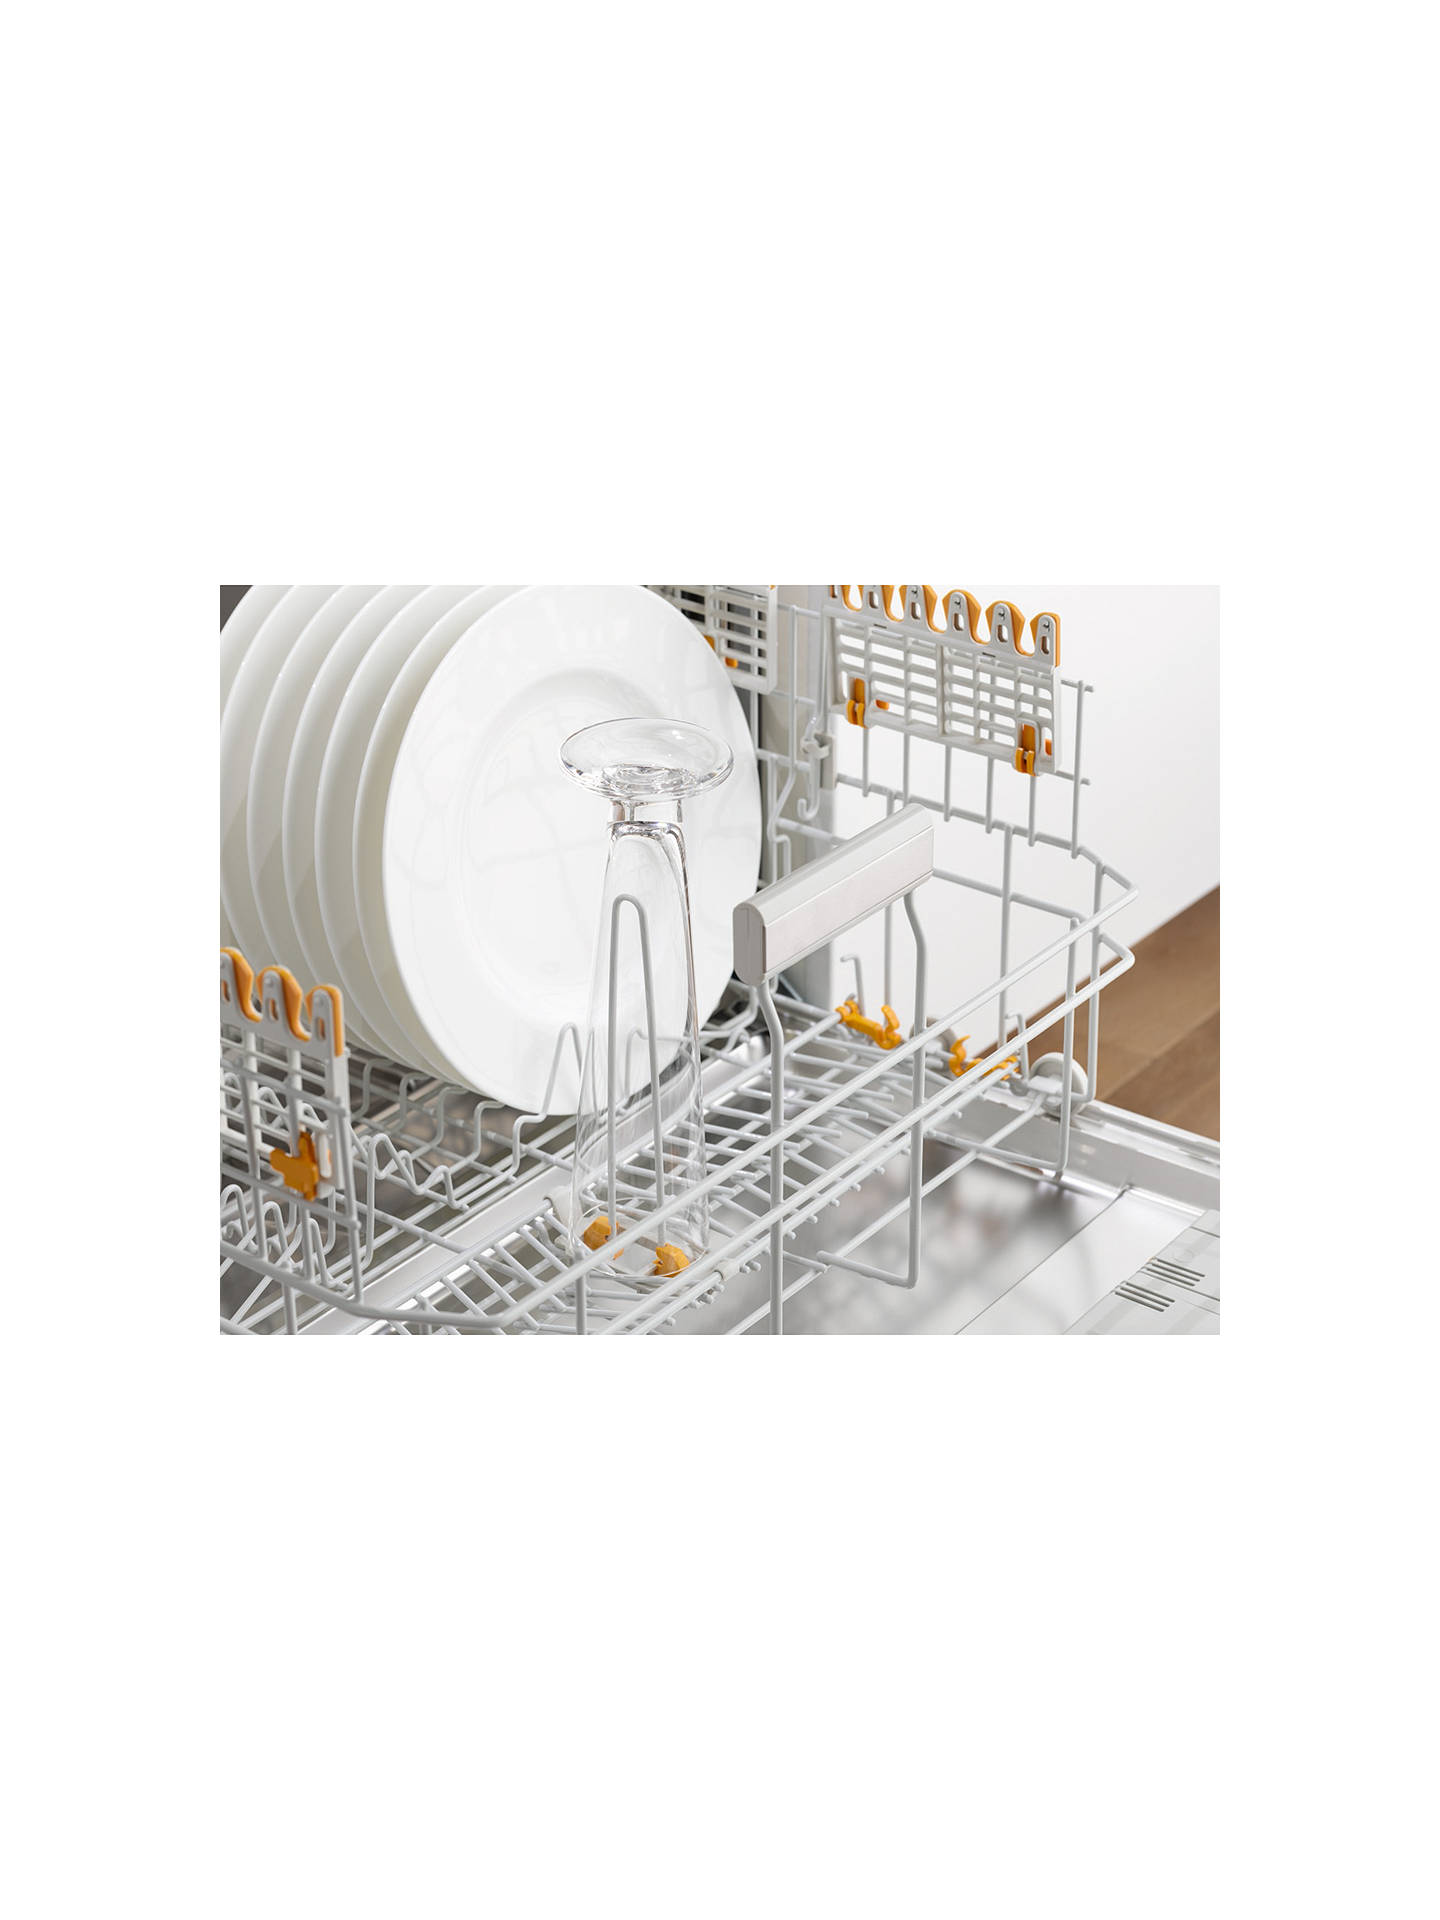 Miele G6820 SC Freestanding Dishwasher, White at John Lewis